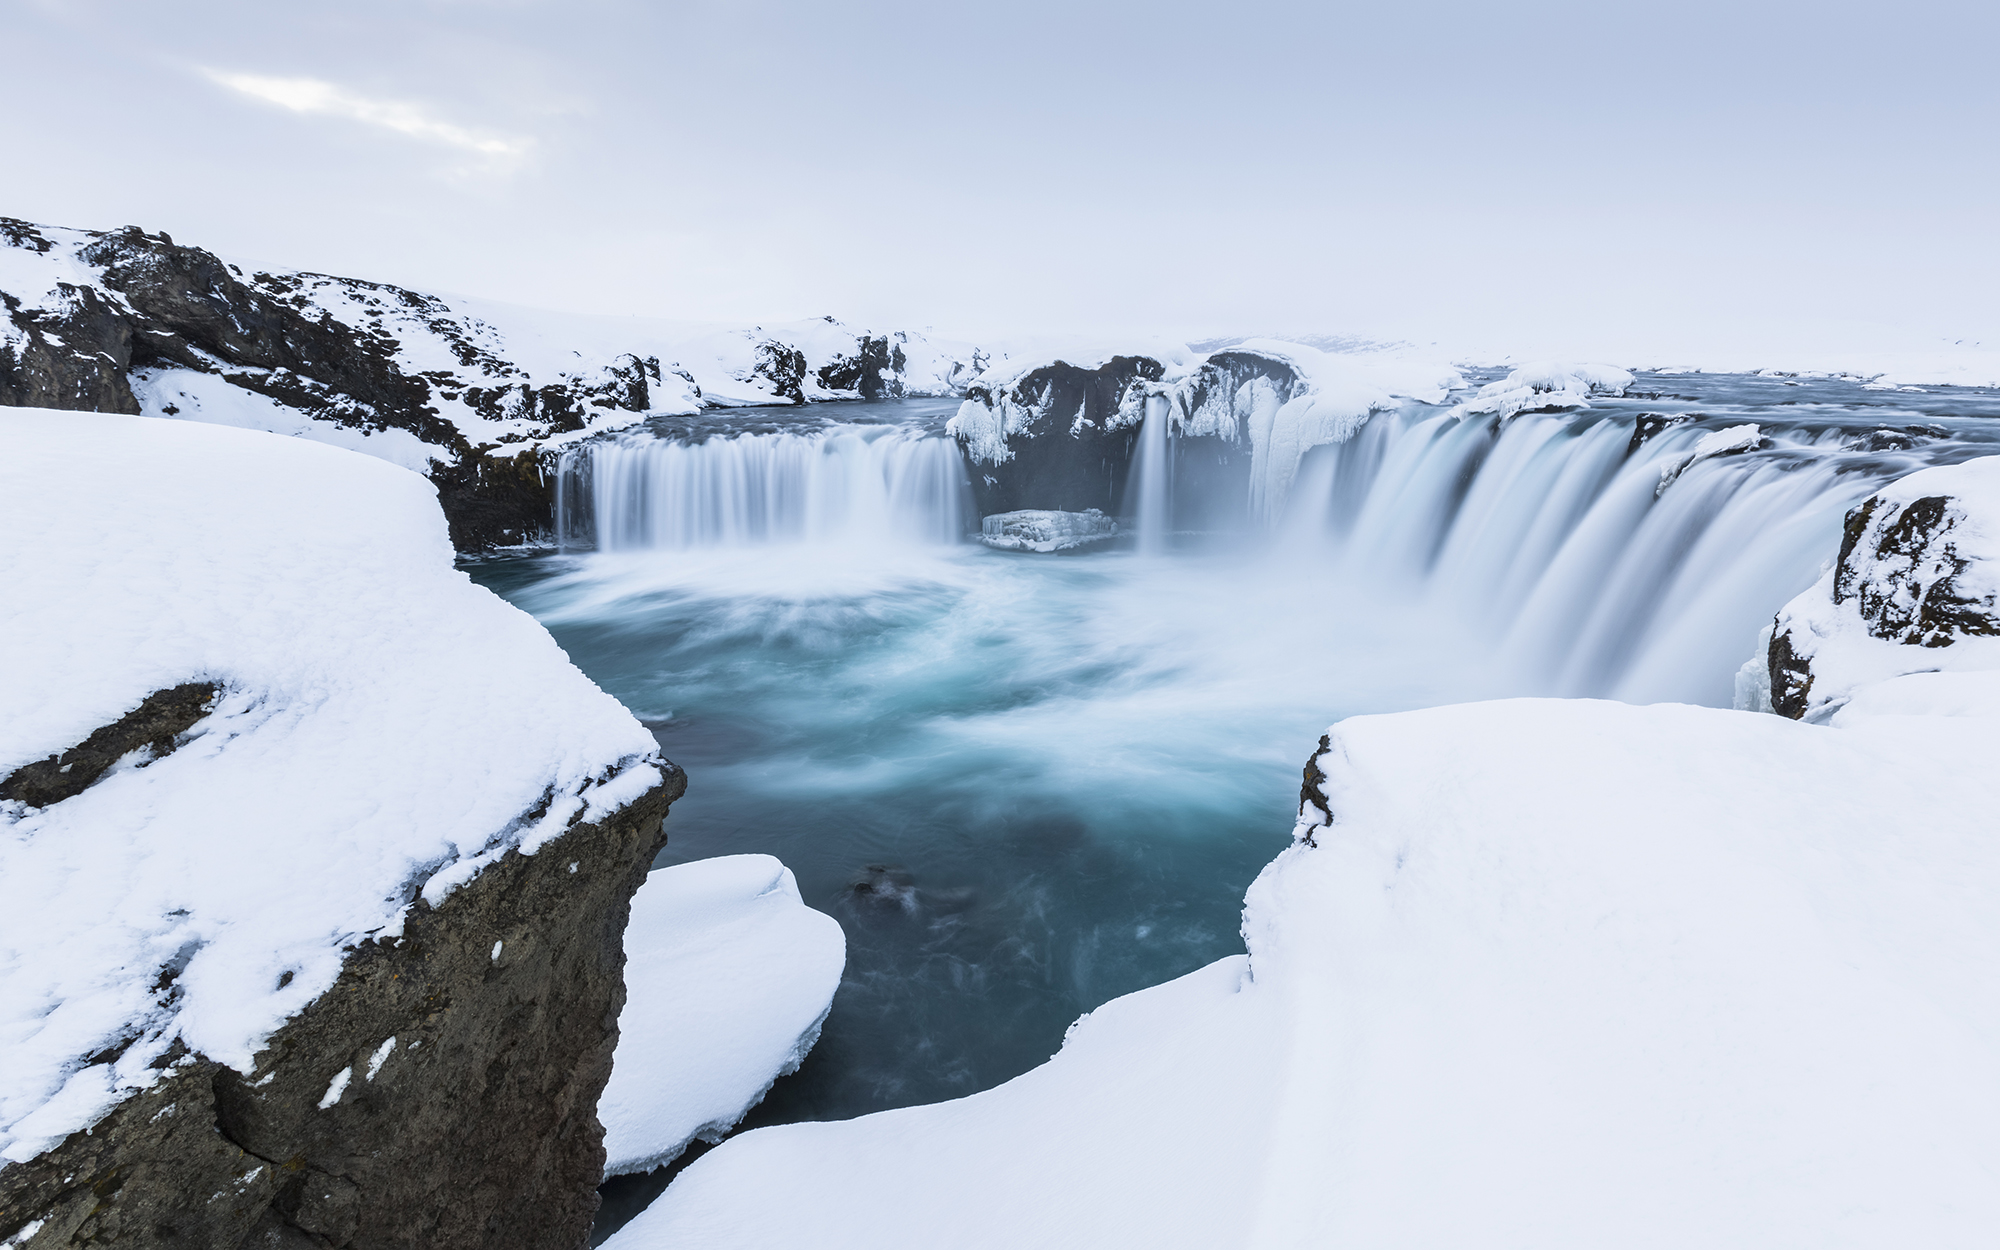 2-for-1 Flight Deal to Iceland and London for $357